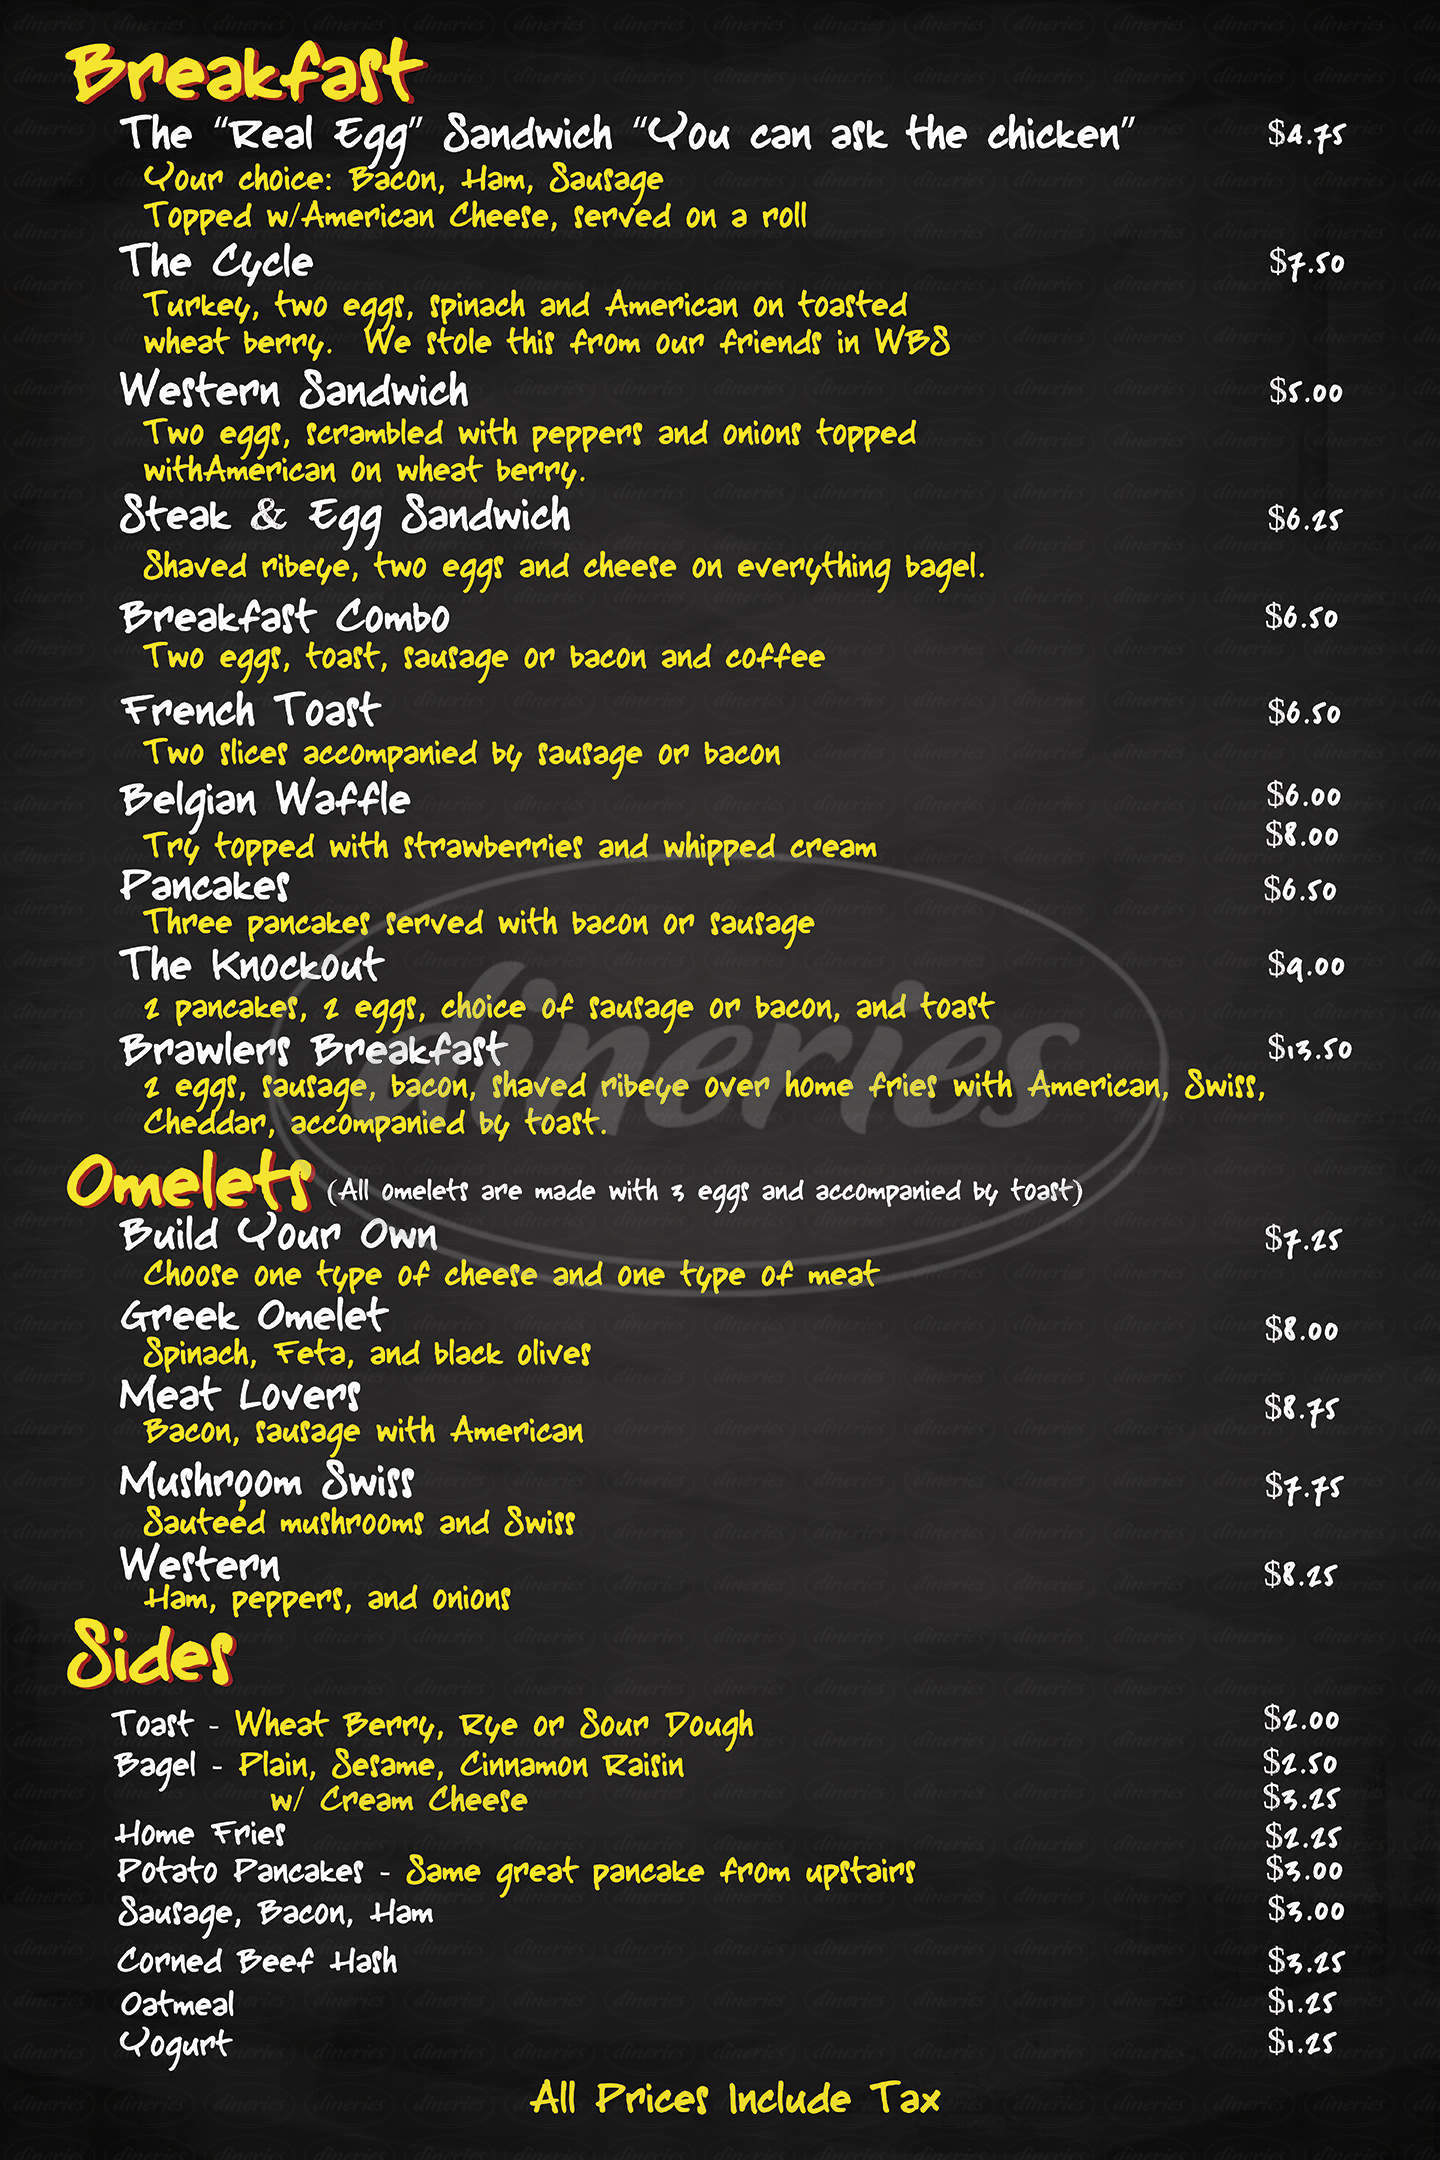 menu for Brawler's Back Alley Deli